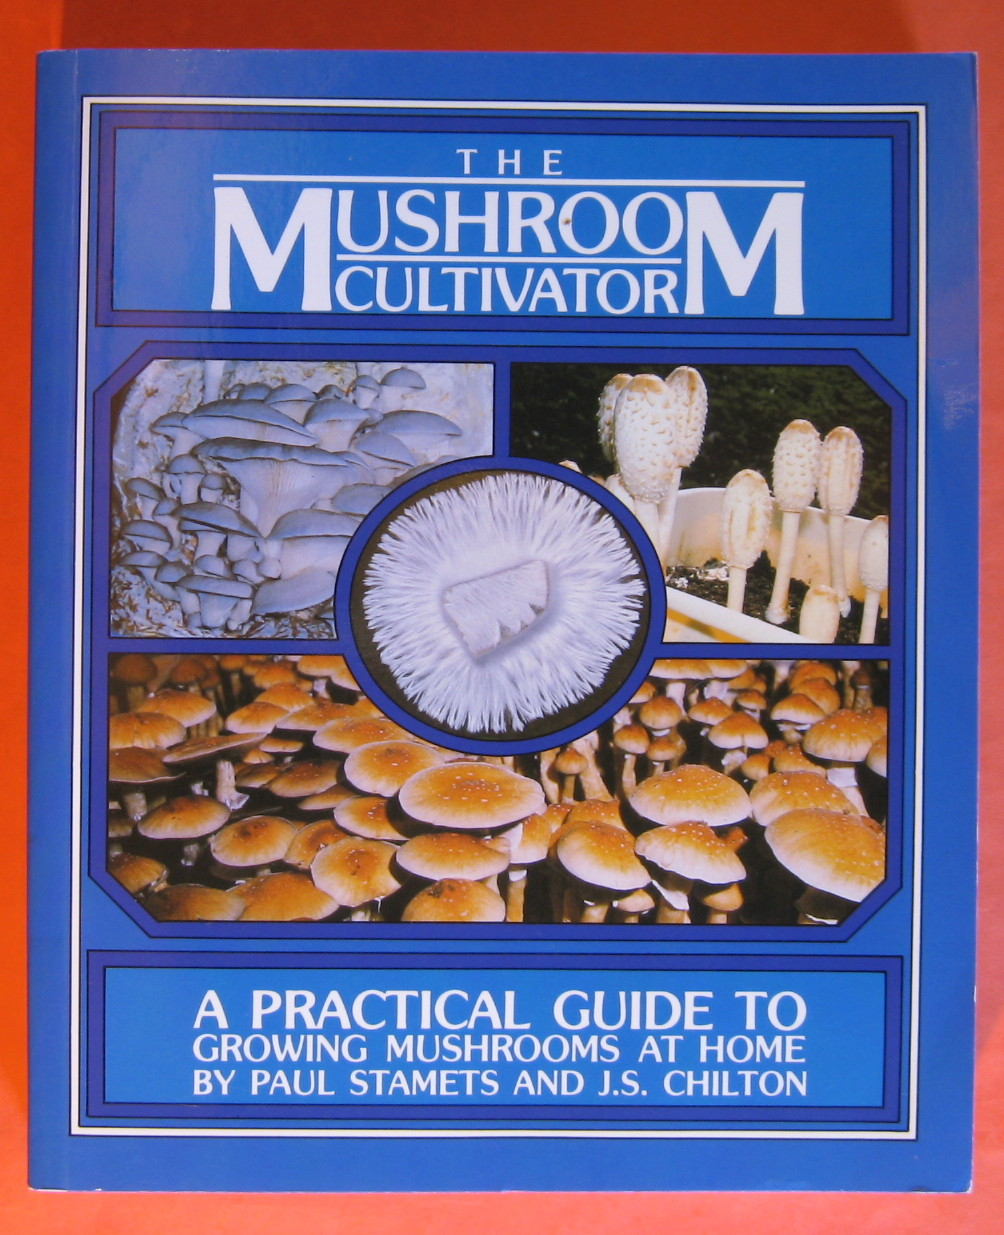 Mushroom Cultivator: A Practical Guide to Growing Mushrooms at Home, Stamets, Paul; Chilton, J. S.